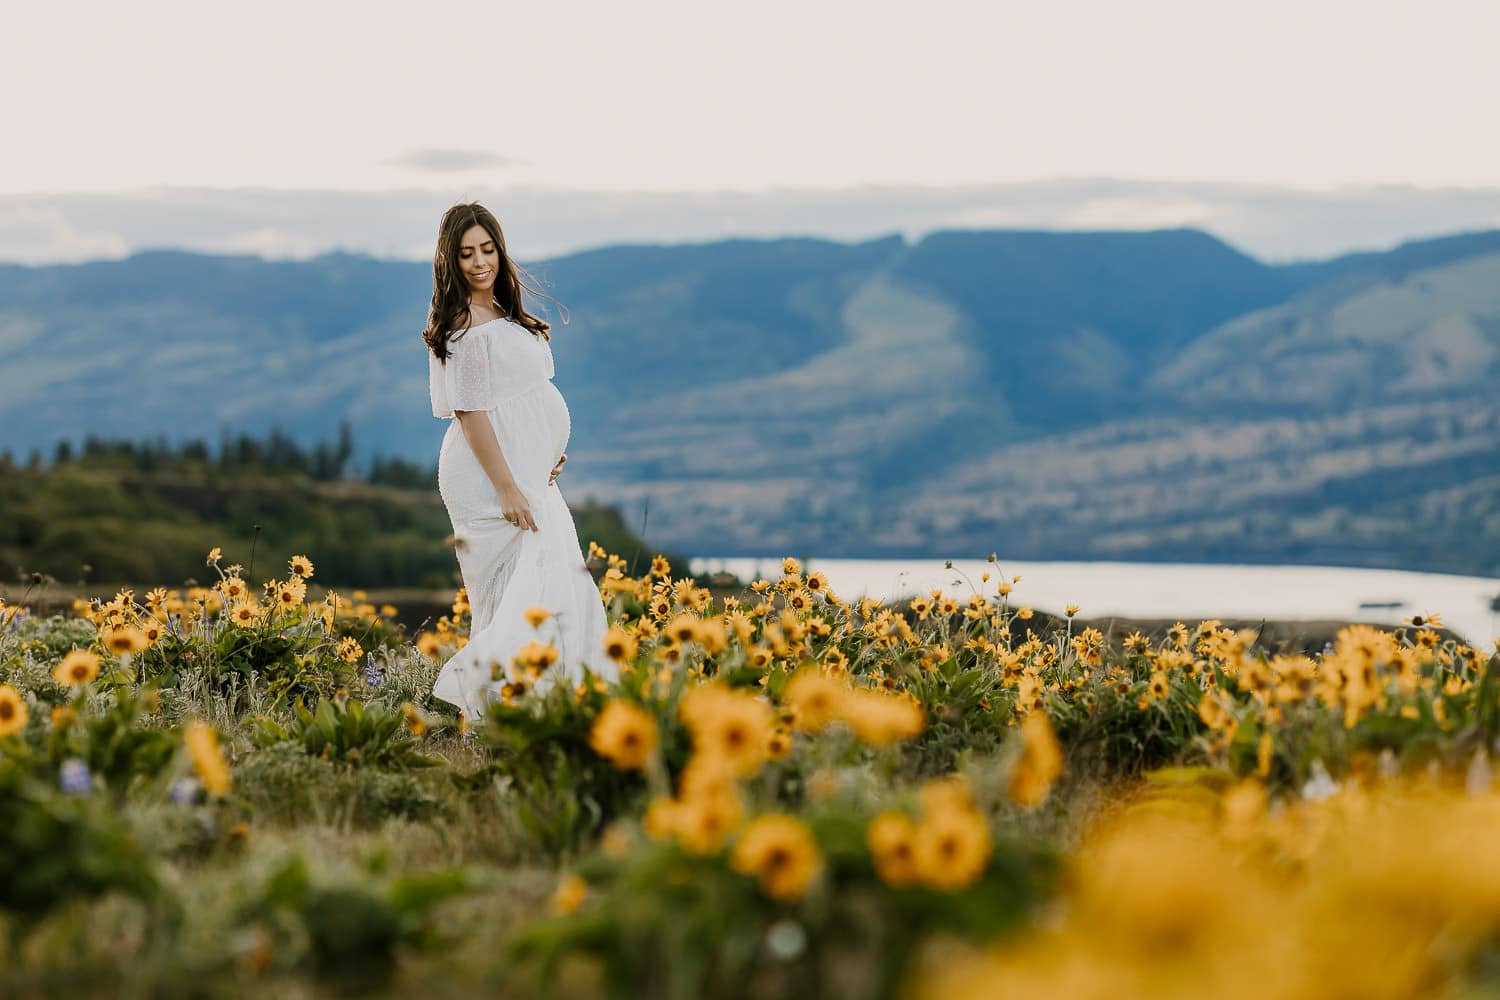 Beautiful pregnant woman in a white dress with wildflowers all around in the Columbia River Gorge